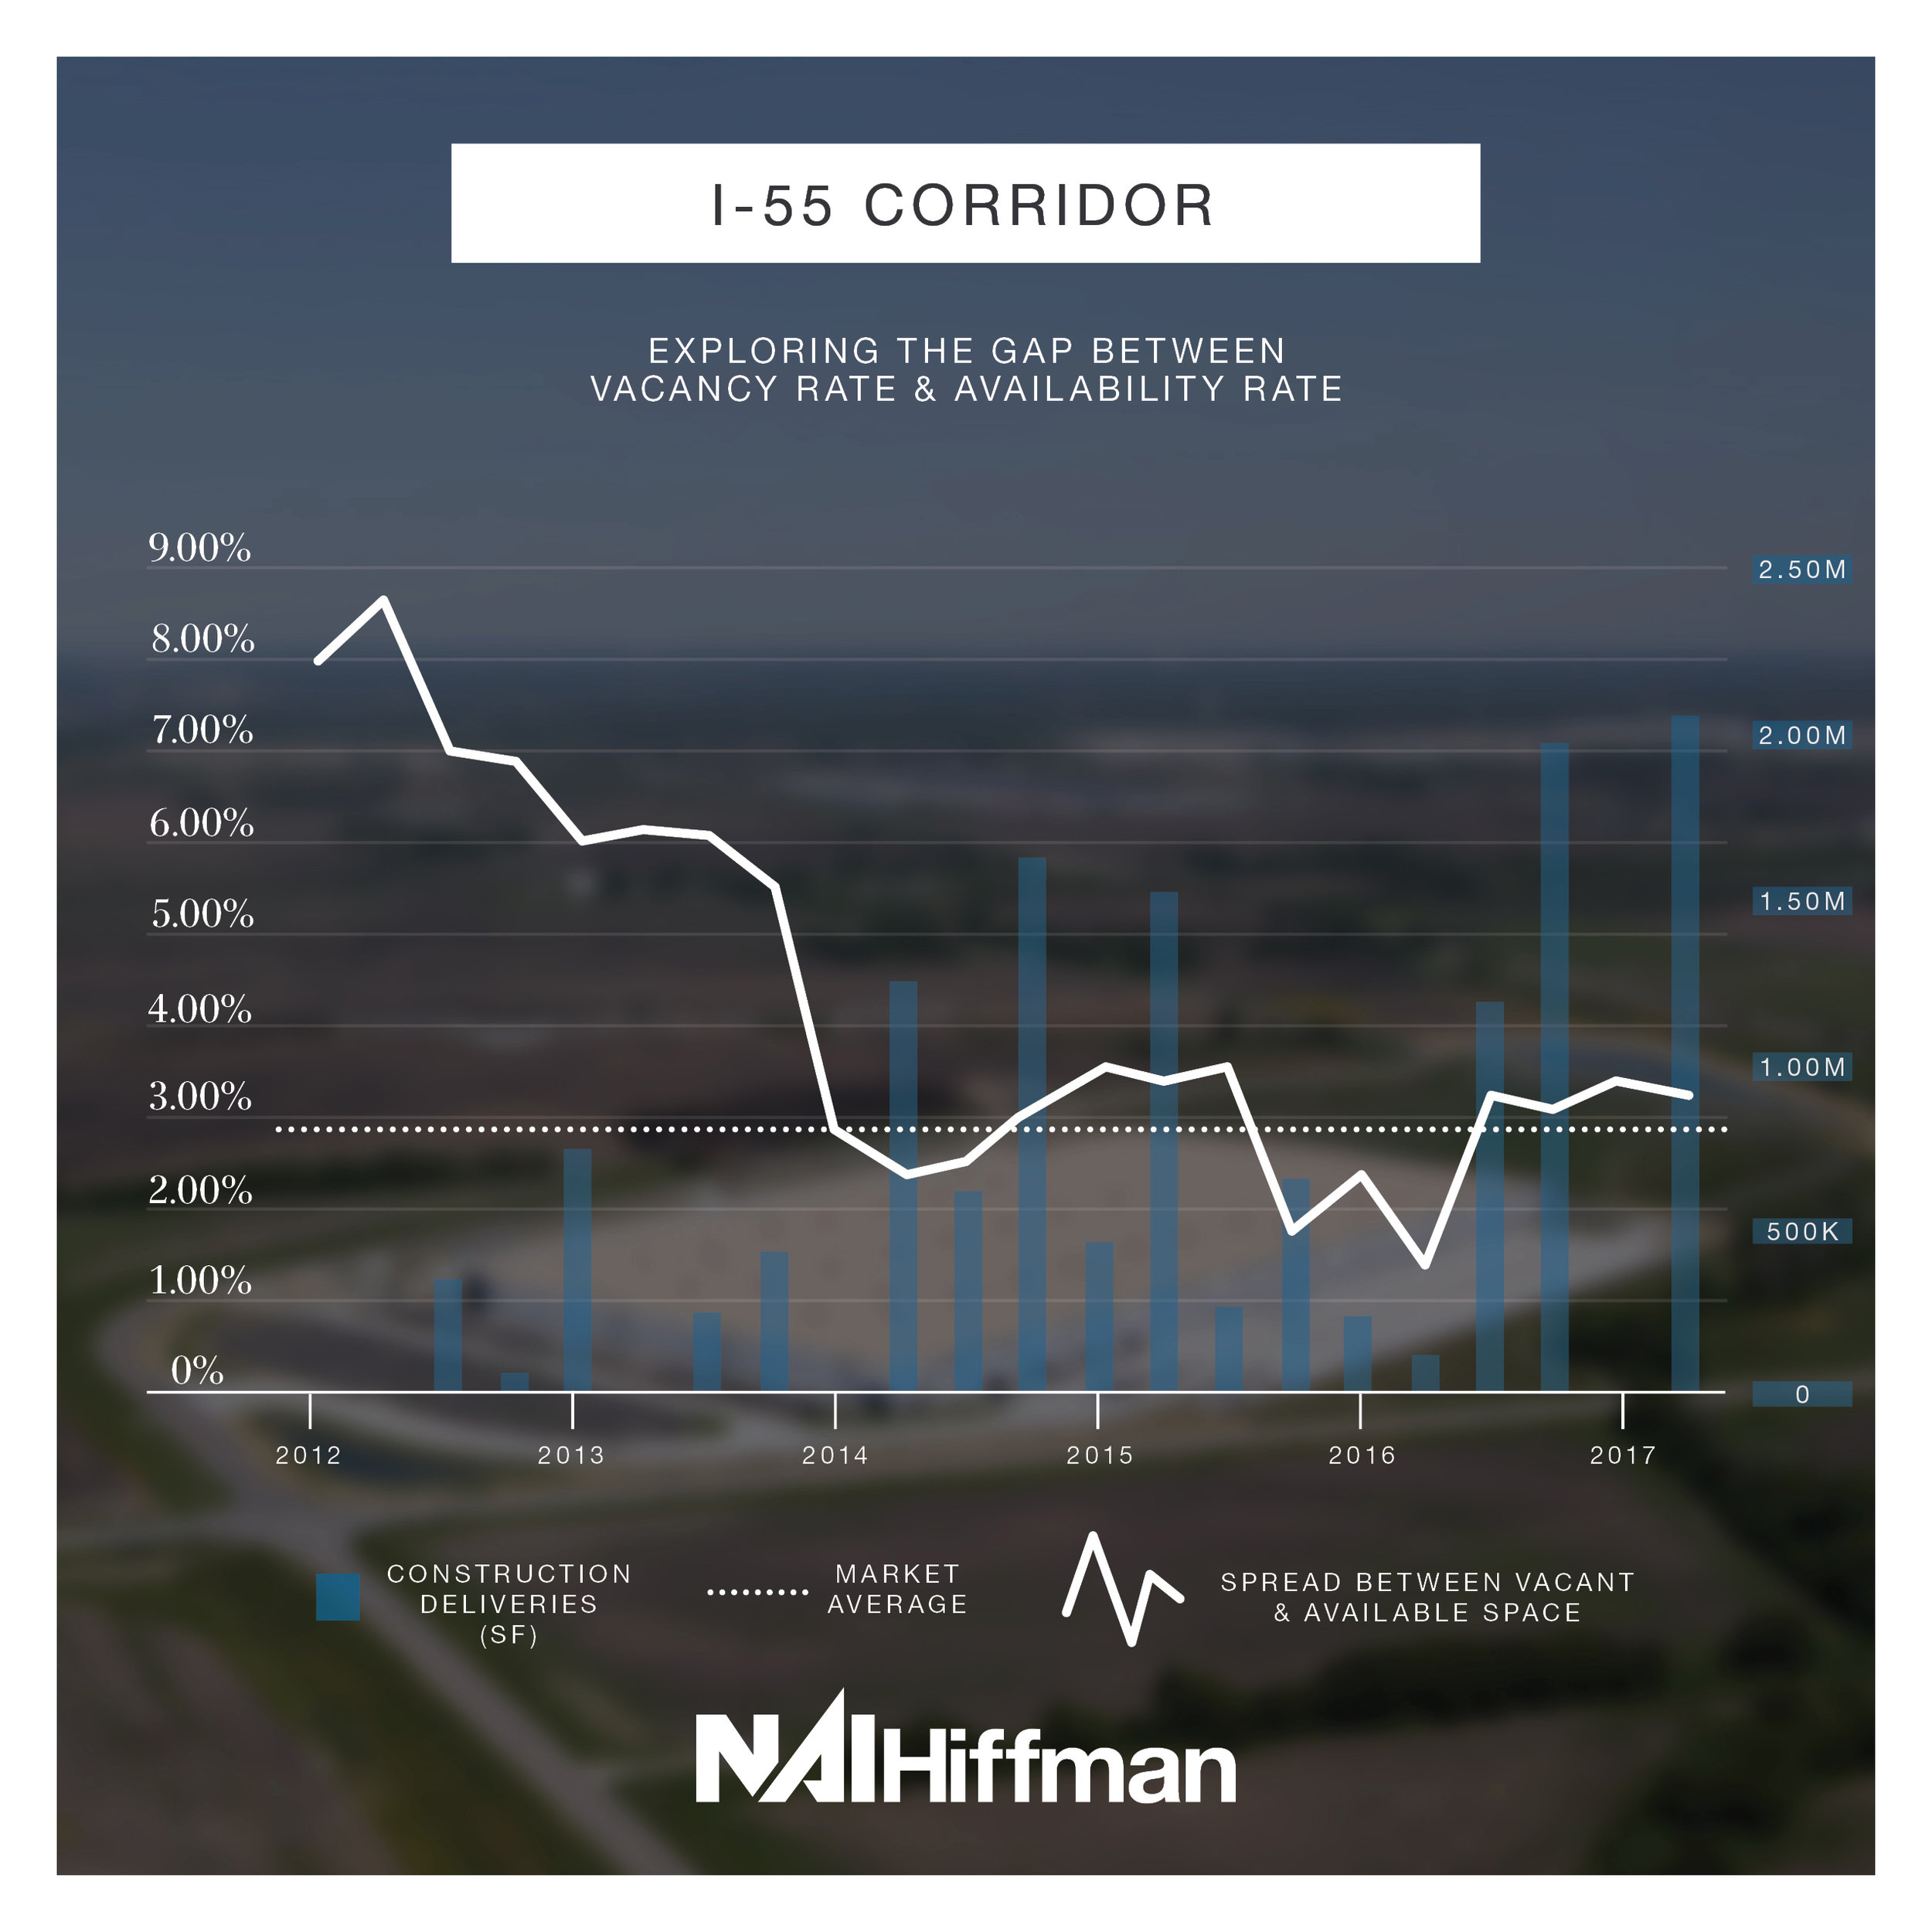 I-55 Corridor  – Of the 5 submarkets listed, the I-55 corridor recorded the highest spread in 2012, but has gradually dropped and continued to hover around the market average since 2014.